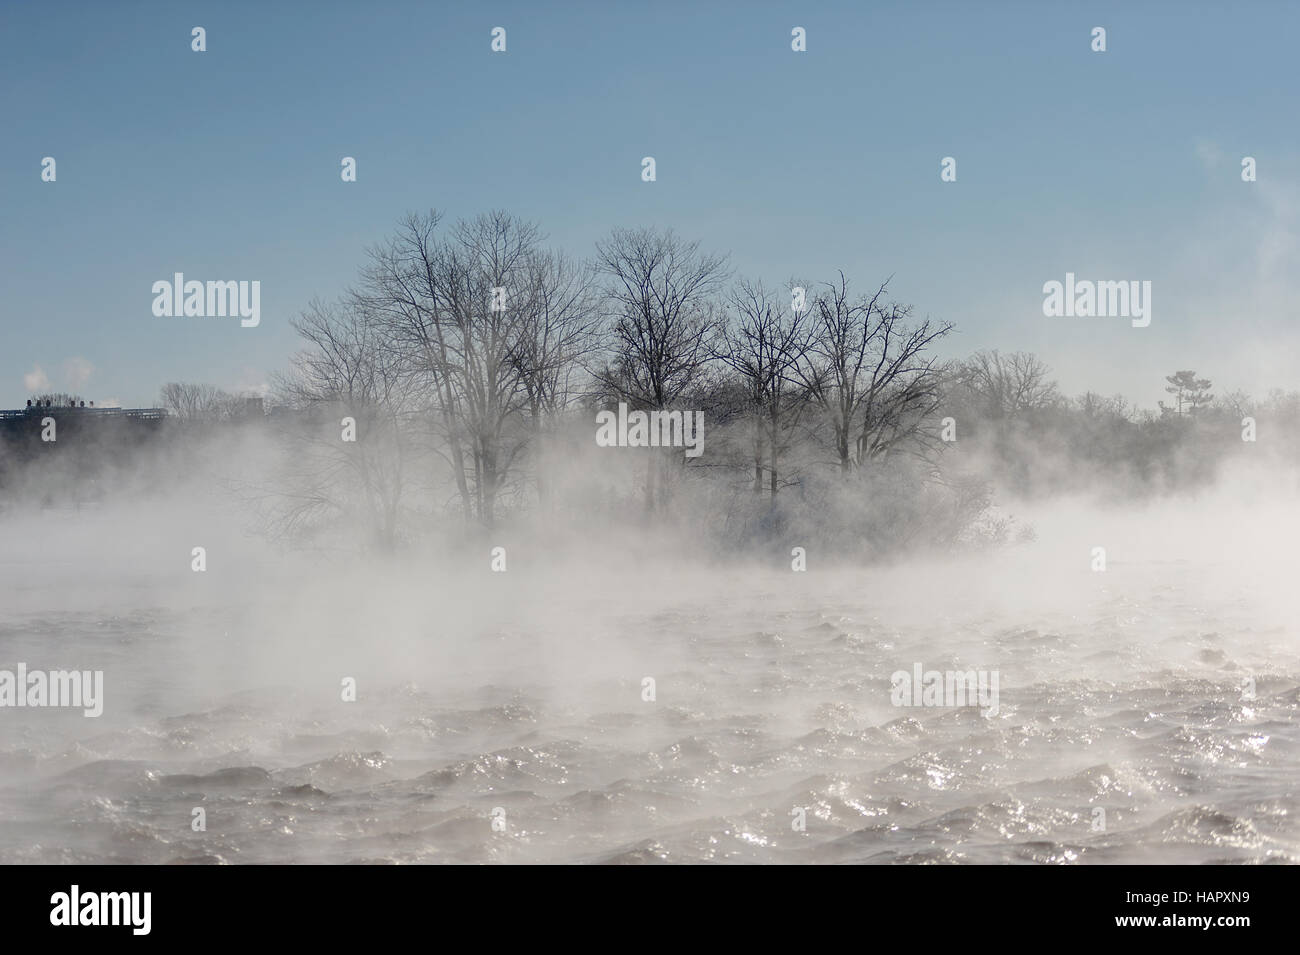 Mist on the River - Stock Image